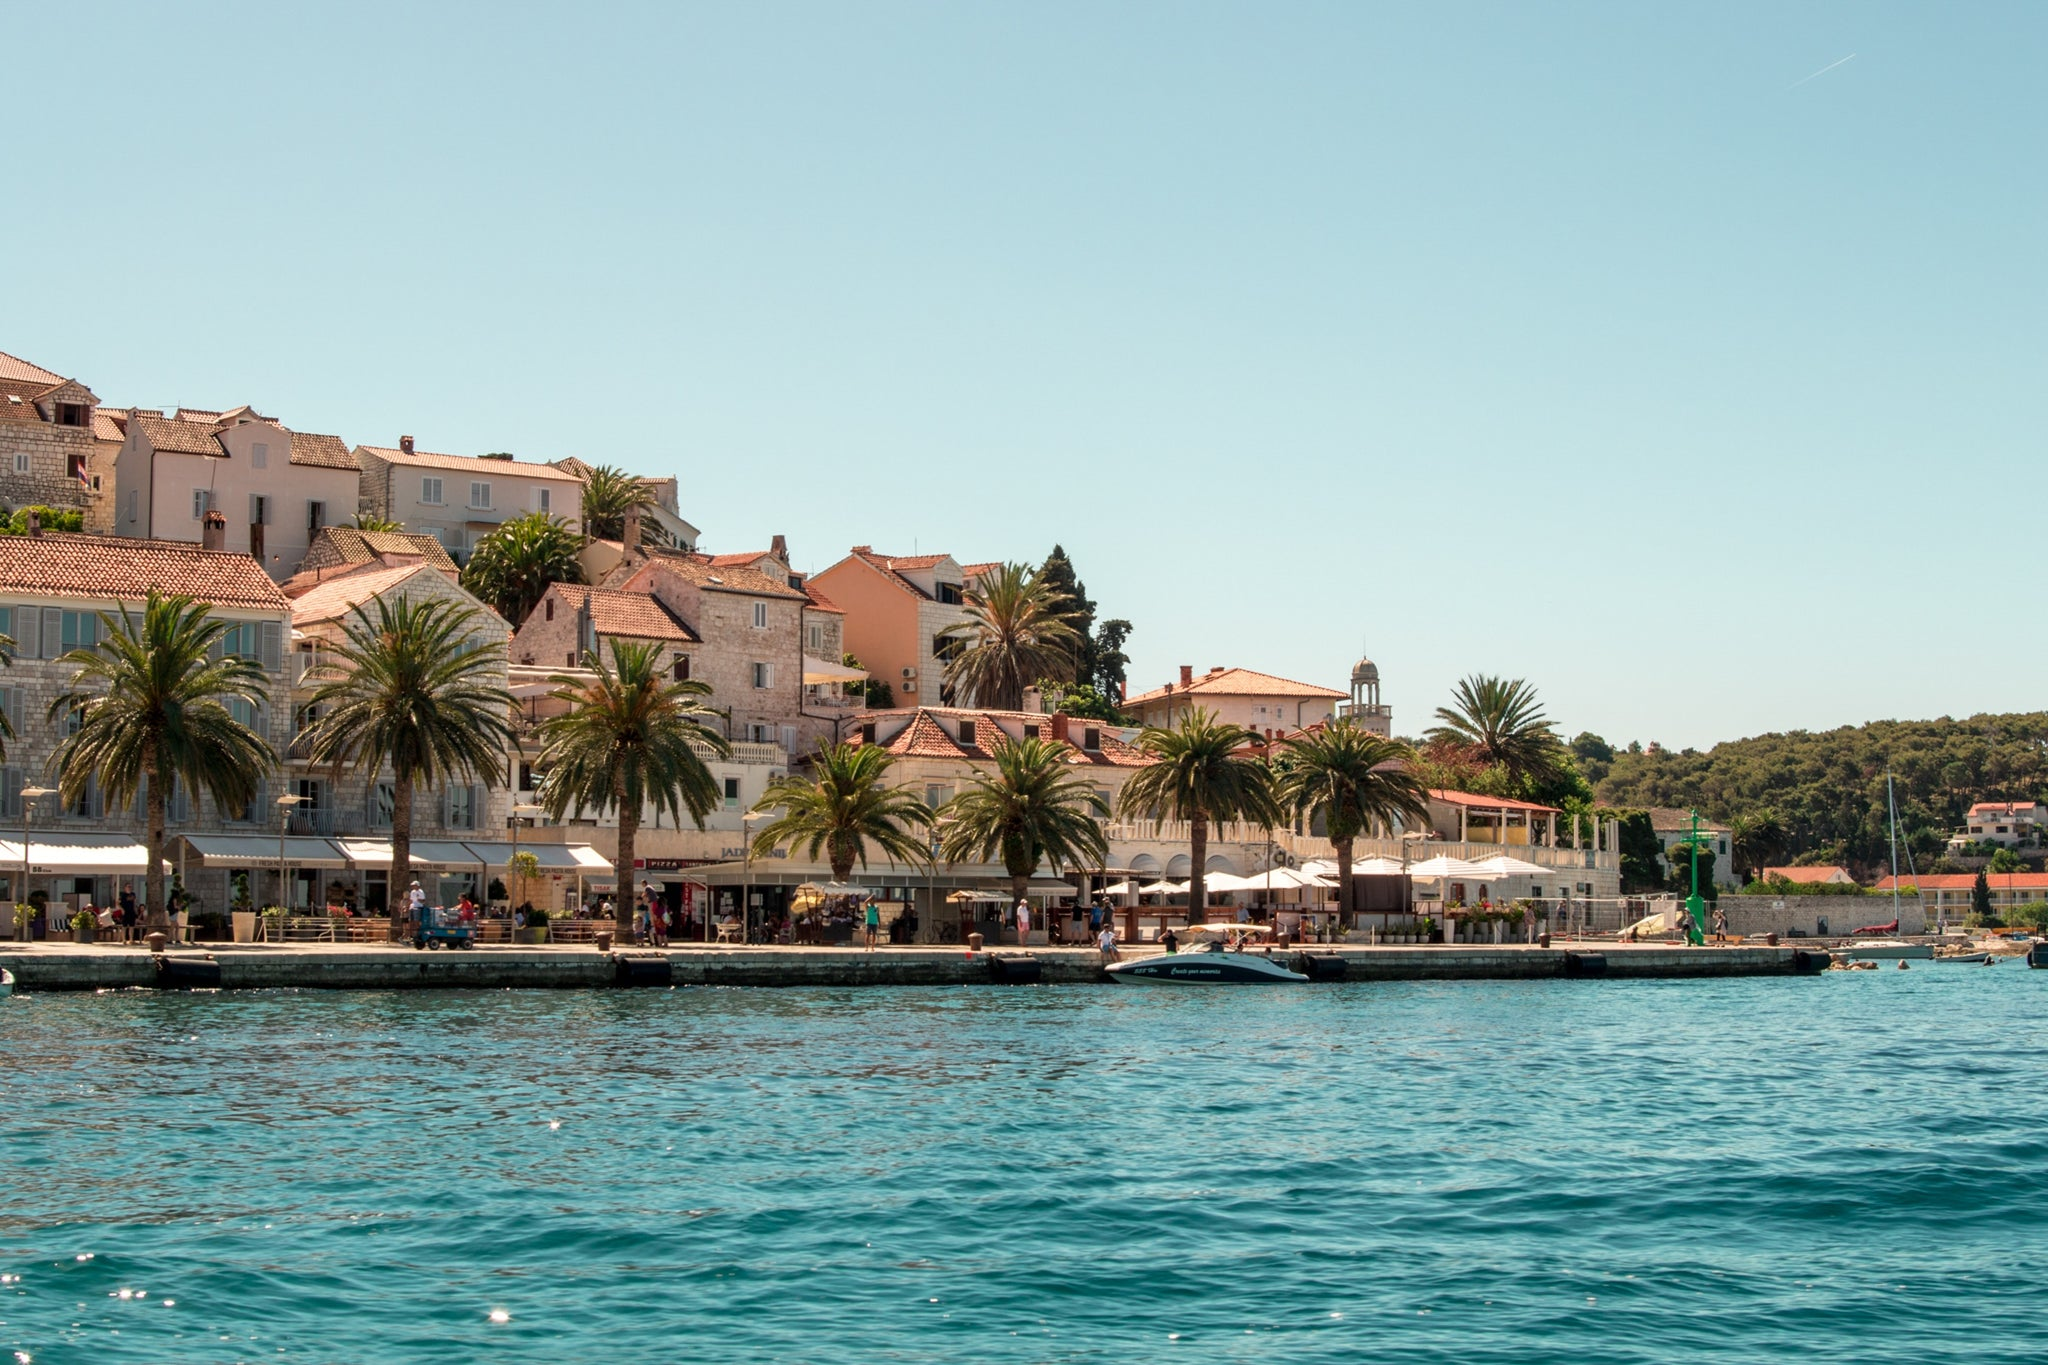 Hvar, Croatia. A small island off the coast of Split in the Adriatic Sea. Barrels of London